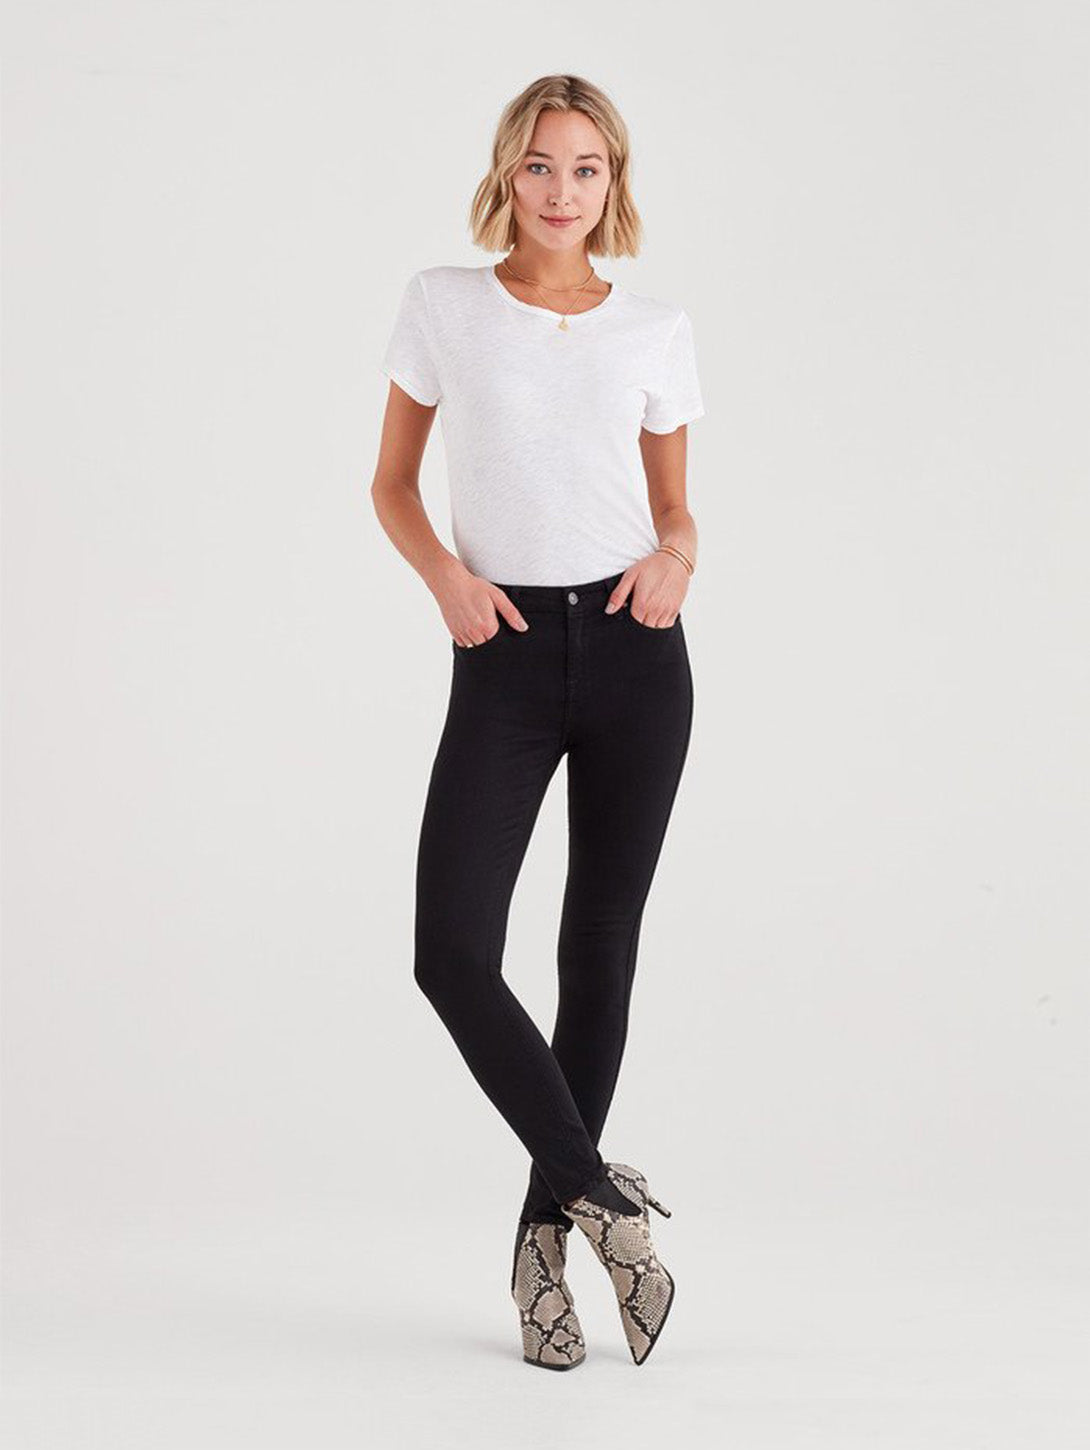 B(Air) Denim High Rise Skinny Jean - Black-Seven for all Mankind-Over the Rainbow